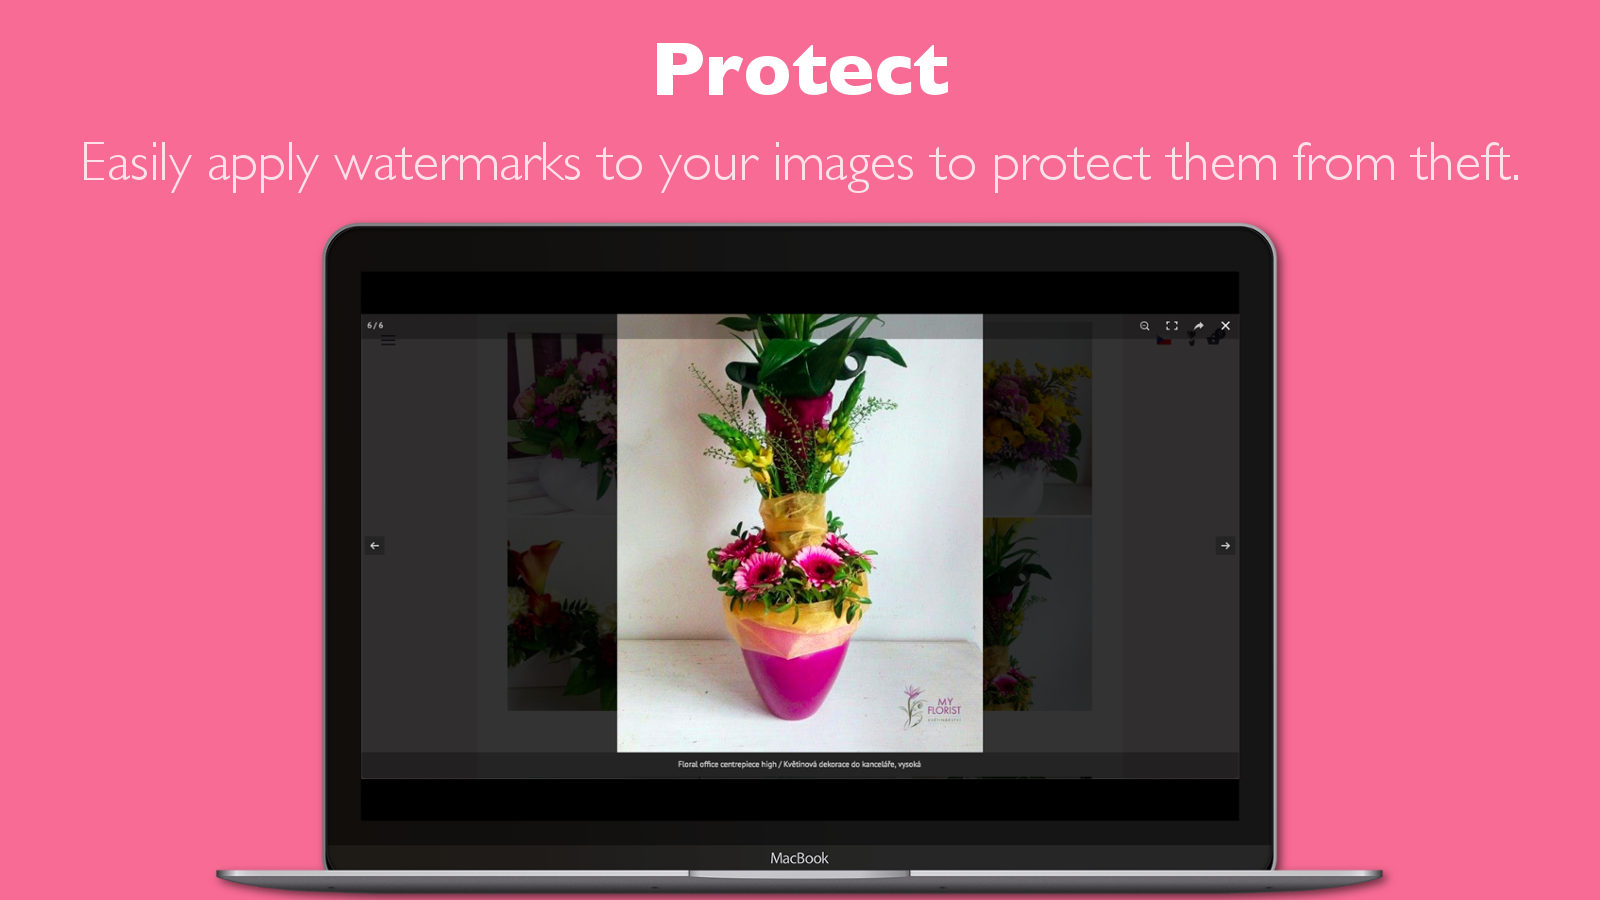 Apply watermarks to your photo gallery images to protect them.